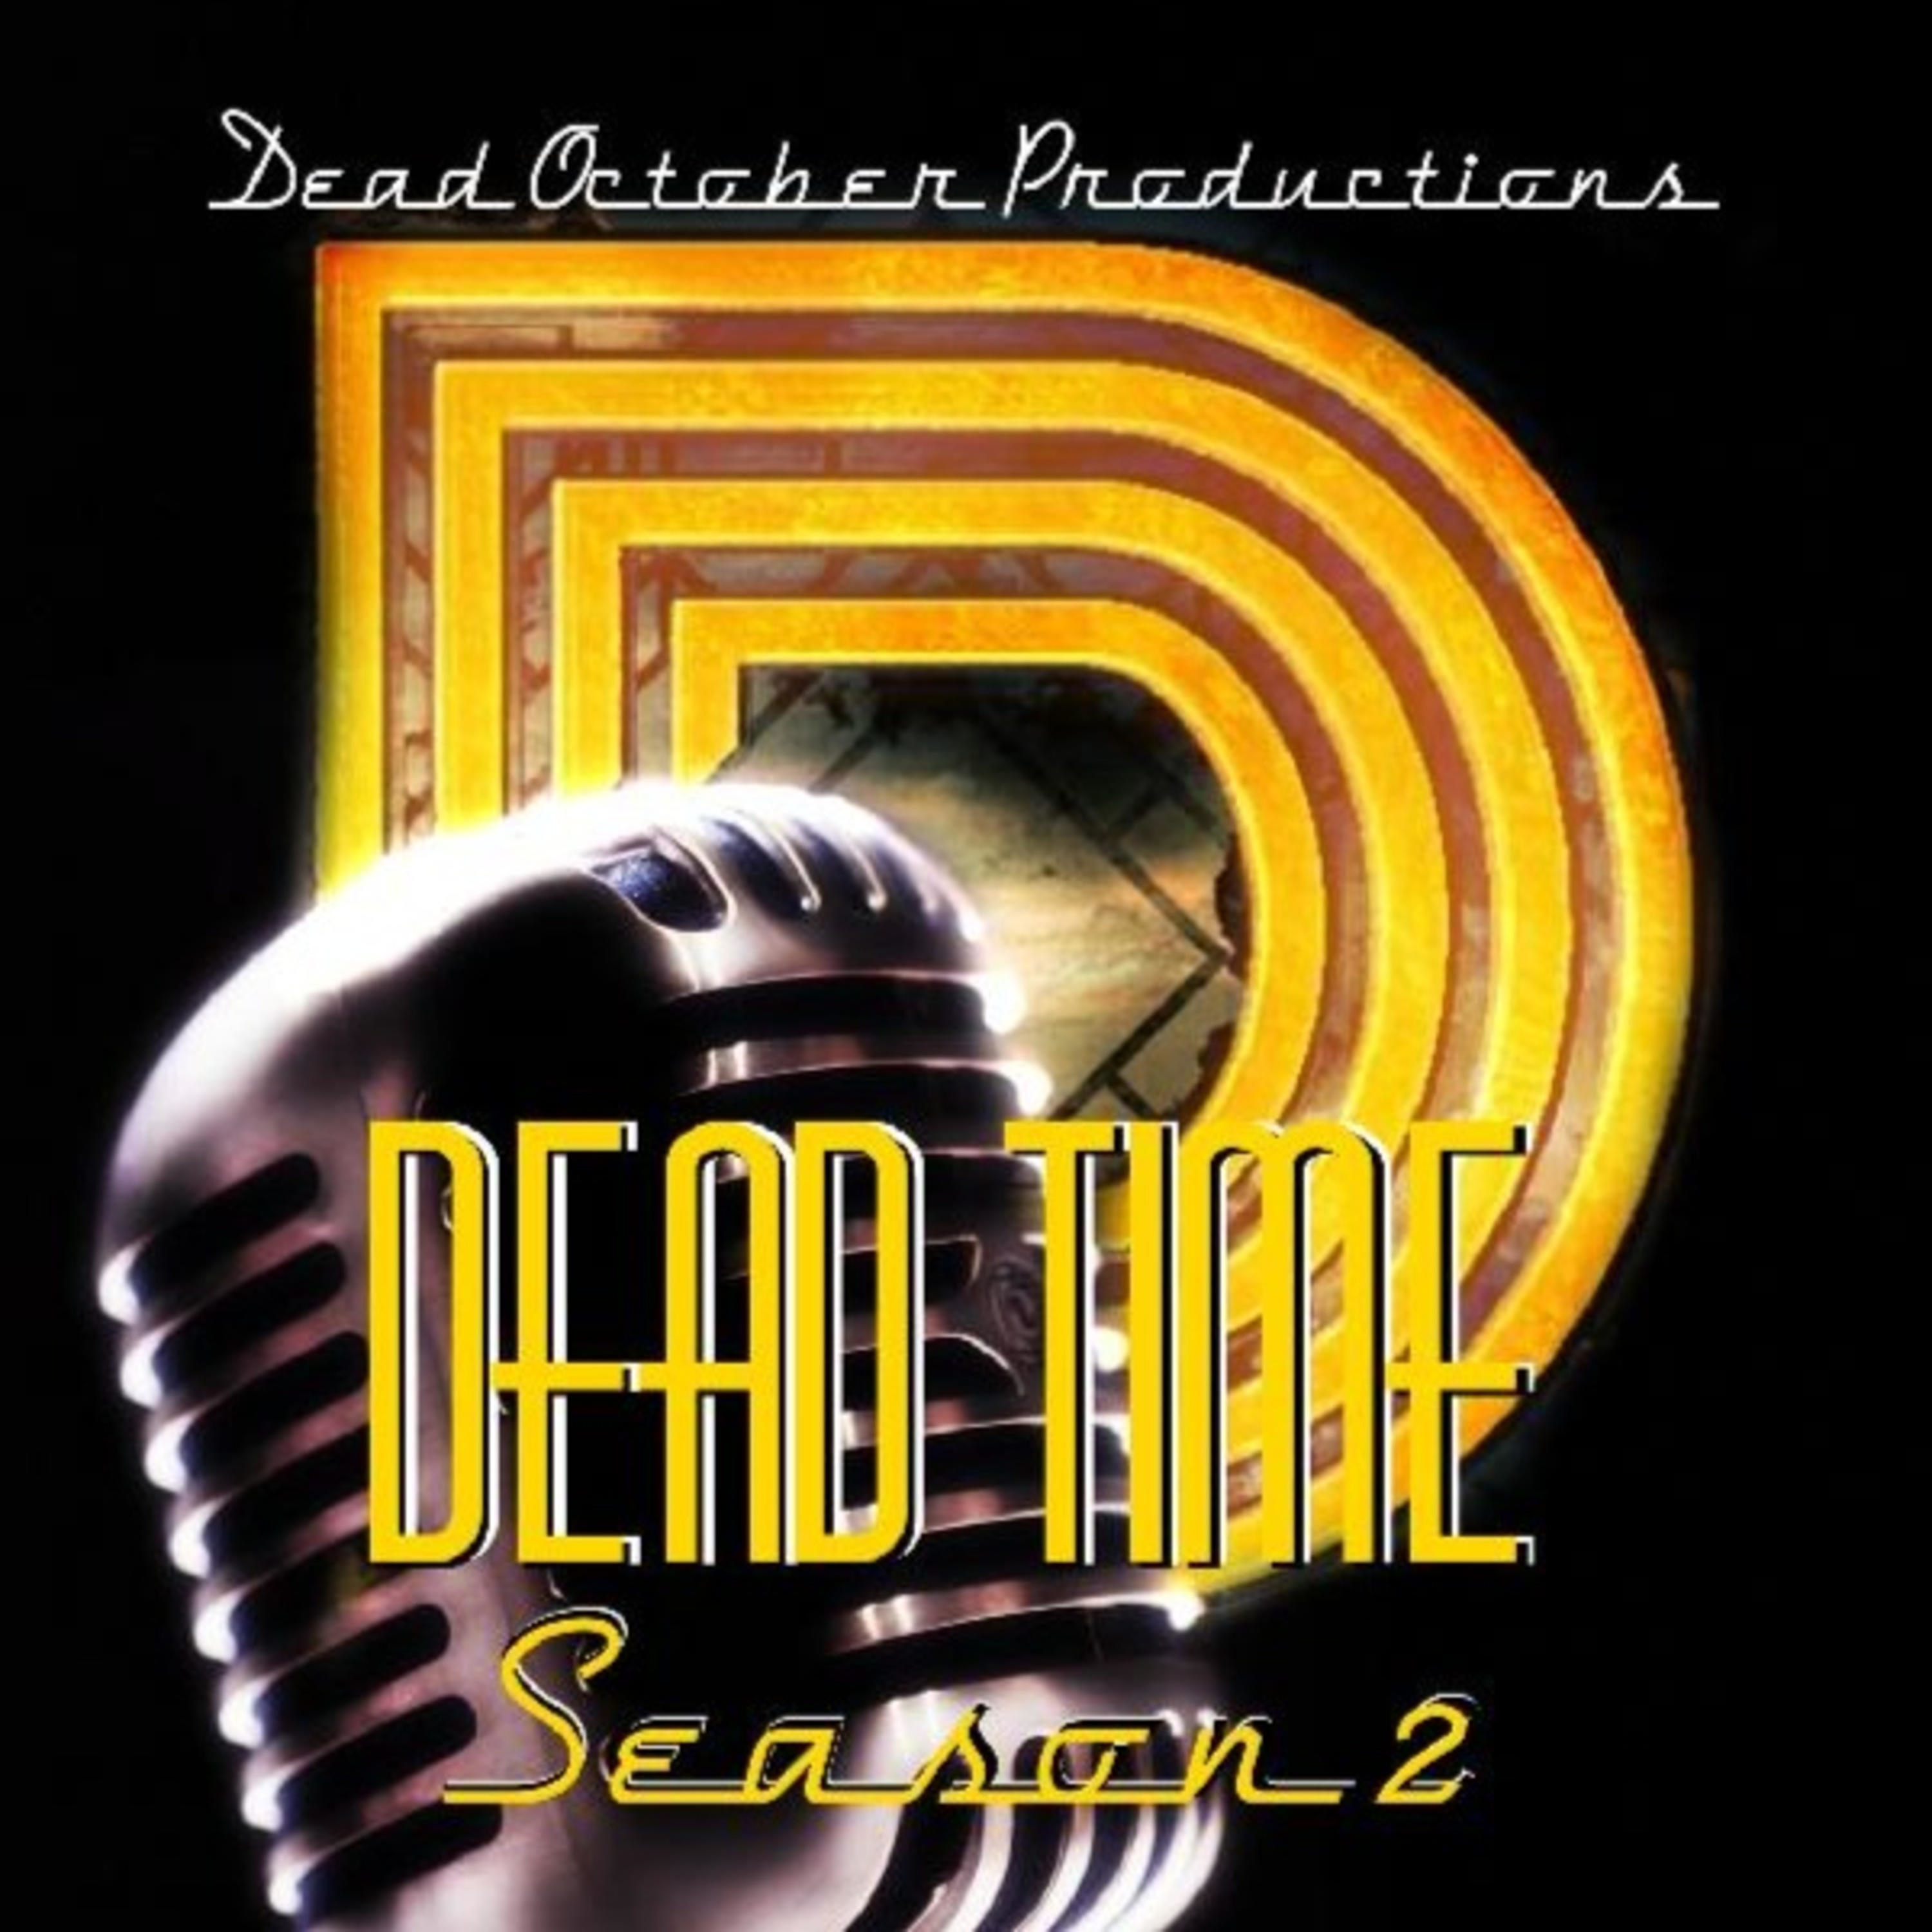 DEAD TIME with Dead October Paranormal